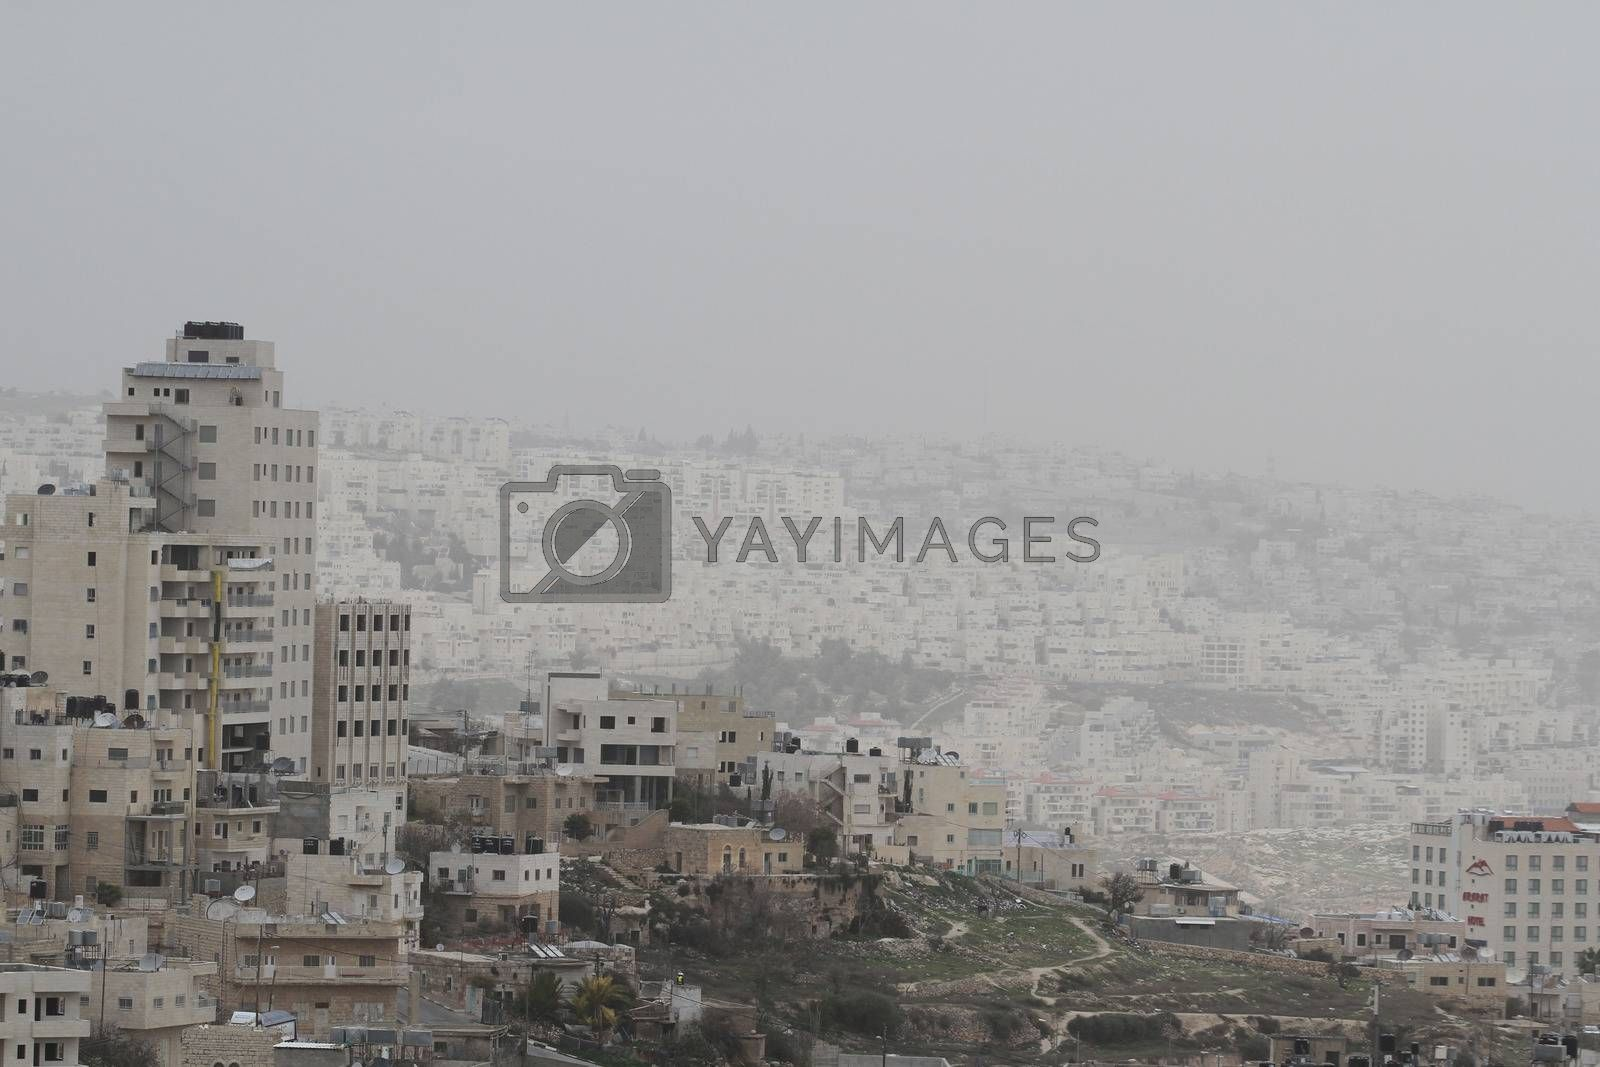 WEST BANK, Bethlehem: A general view of the Palestinian city of Bethlehem, as a sandstorm hits Israel and West Bank, causing air pollution, on January 19, 2016. A low-pressure system over the Mediterranean has driven the dust northeast from Egypt and the Sinai Peninsula.